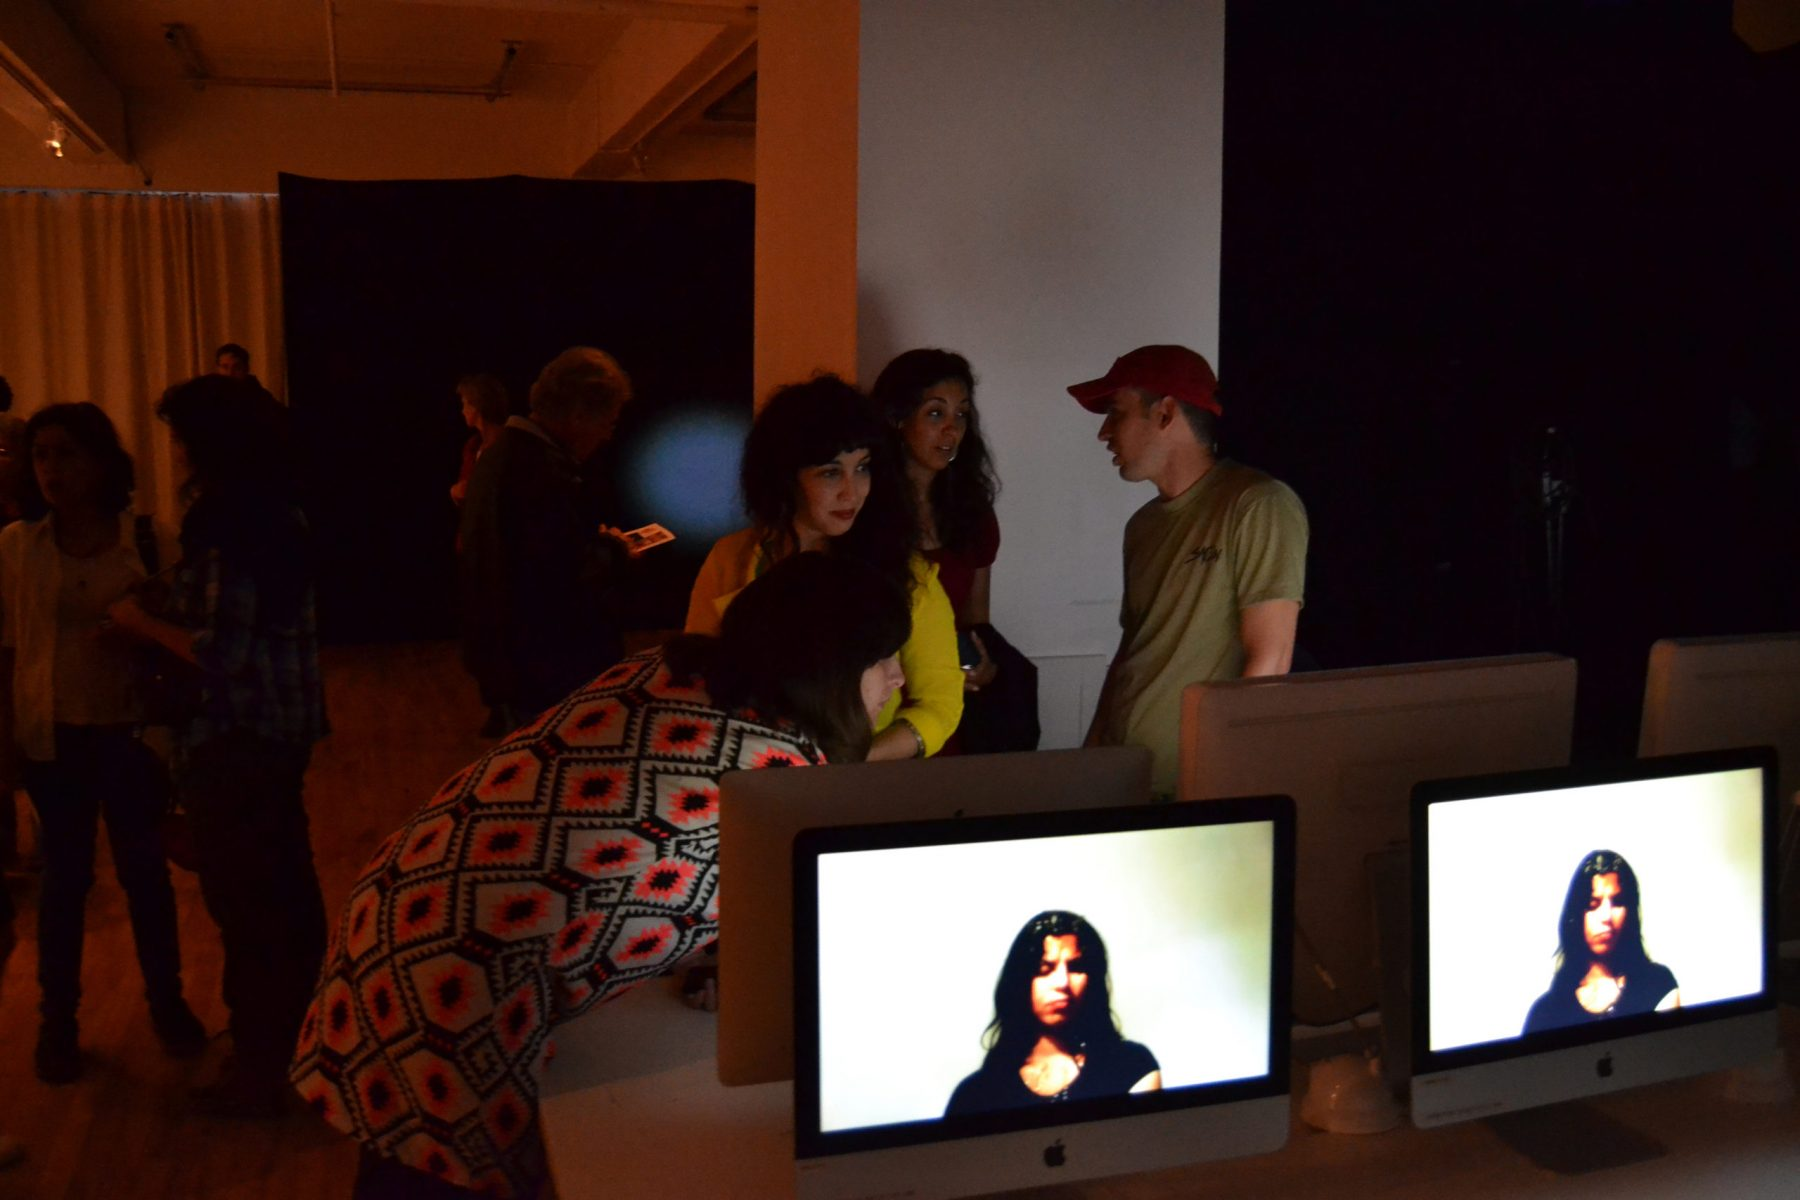 6. A drop of honey, 2013 - Performance, Opening (Naivy Perez)